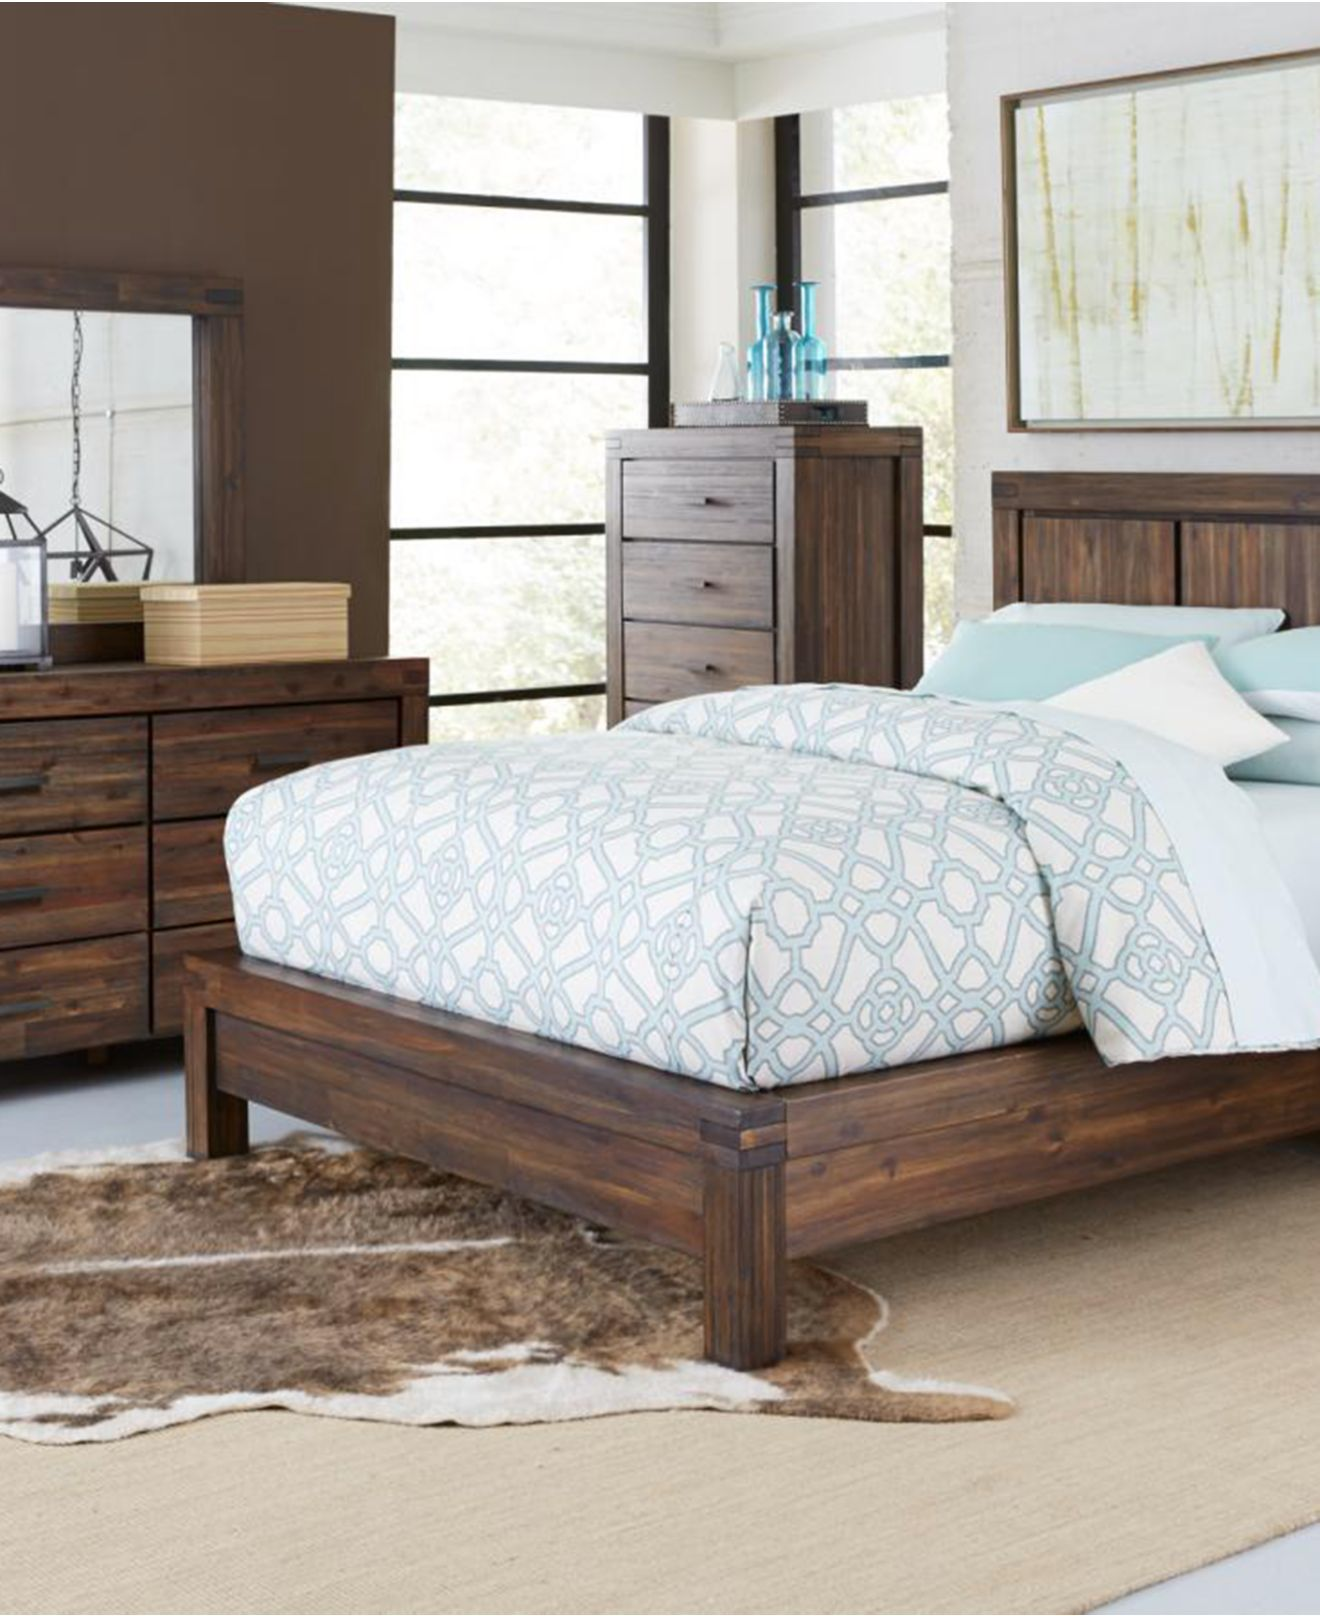 Macys Furniture Bedroom Luxurious Macys Bedroom Furnitureon Home Design Ideas Withmacys